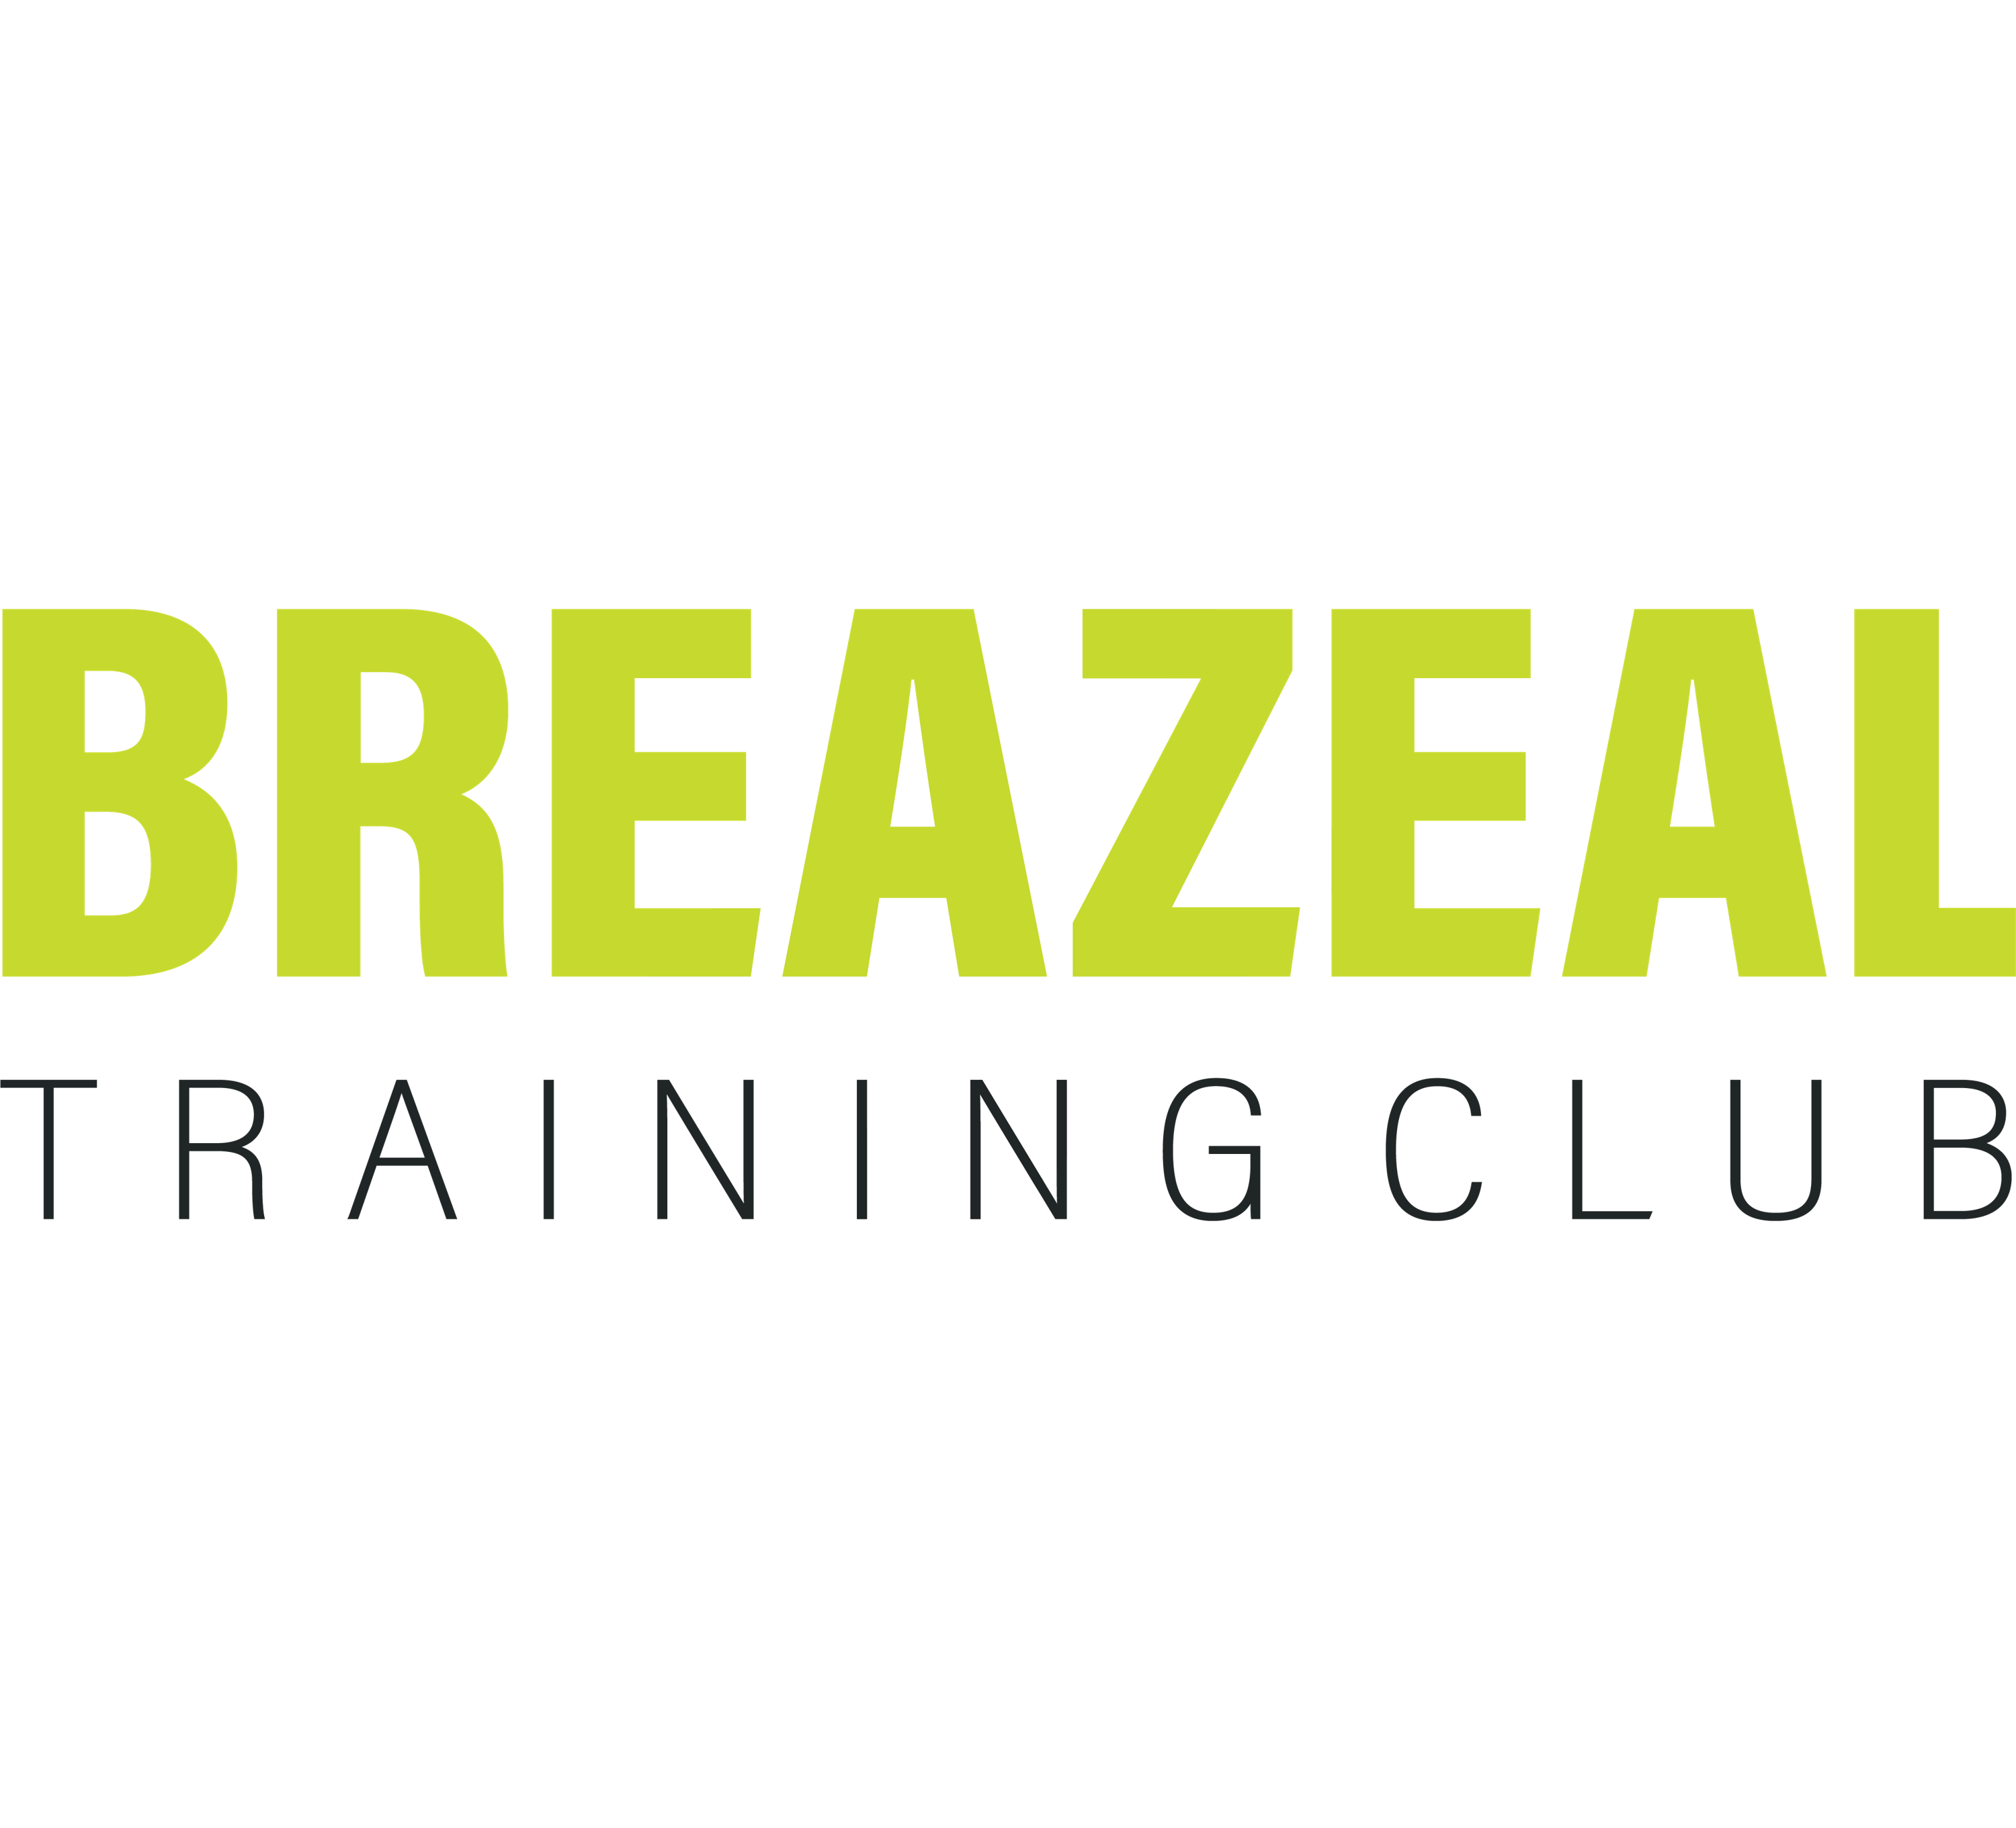 Breazeal Training Club